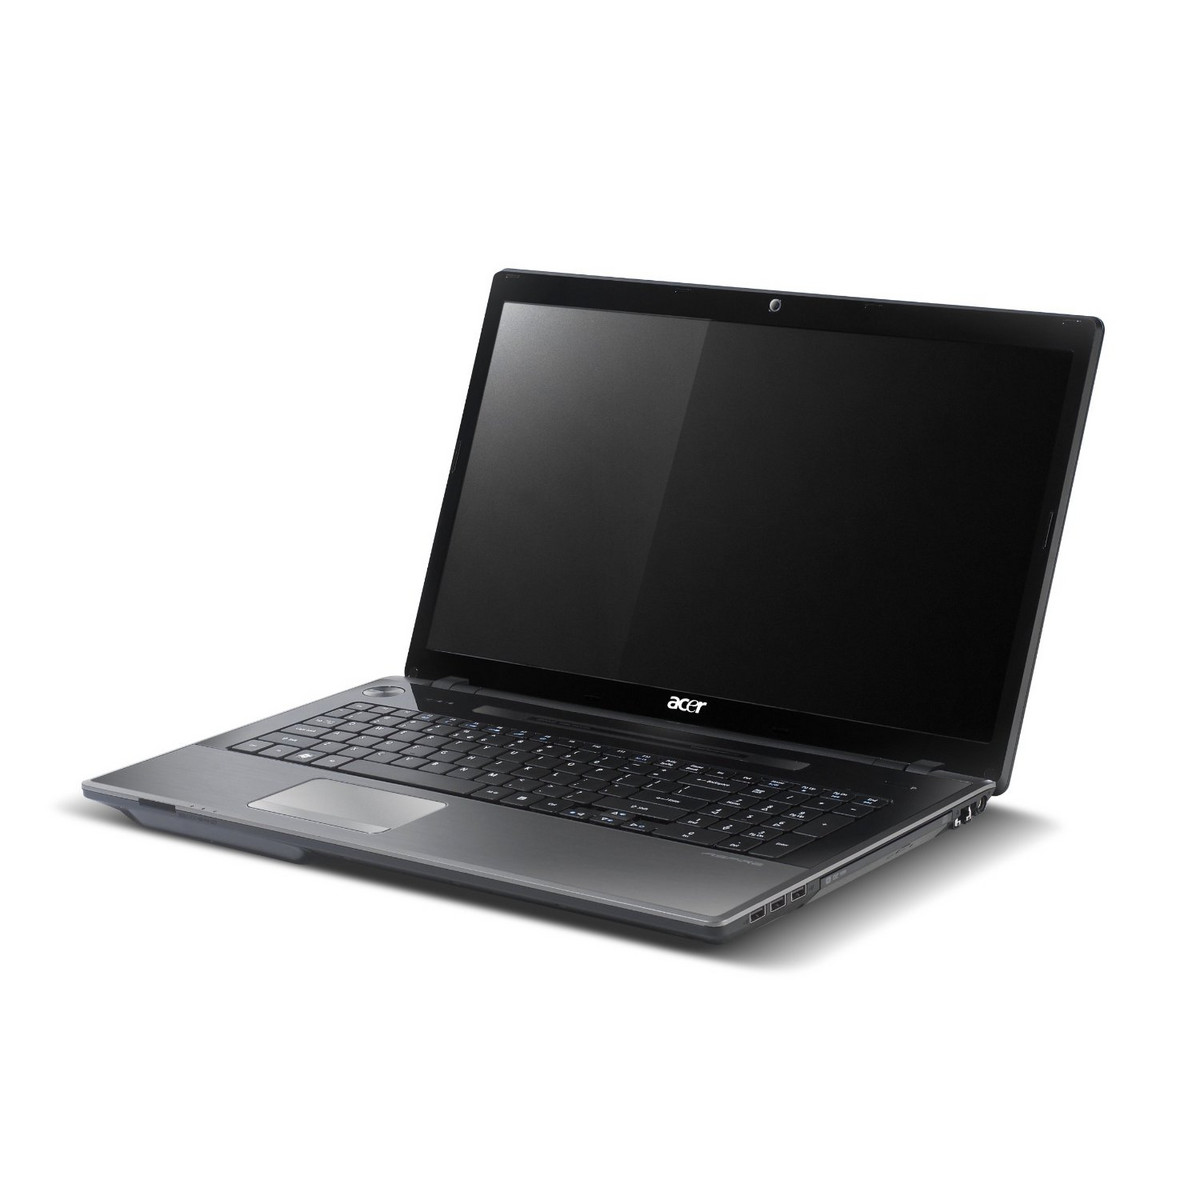 ACER ASPIRE 7745G INTEL CHIPSET DRIVERS UPDATE